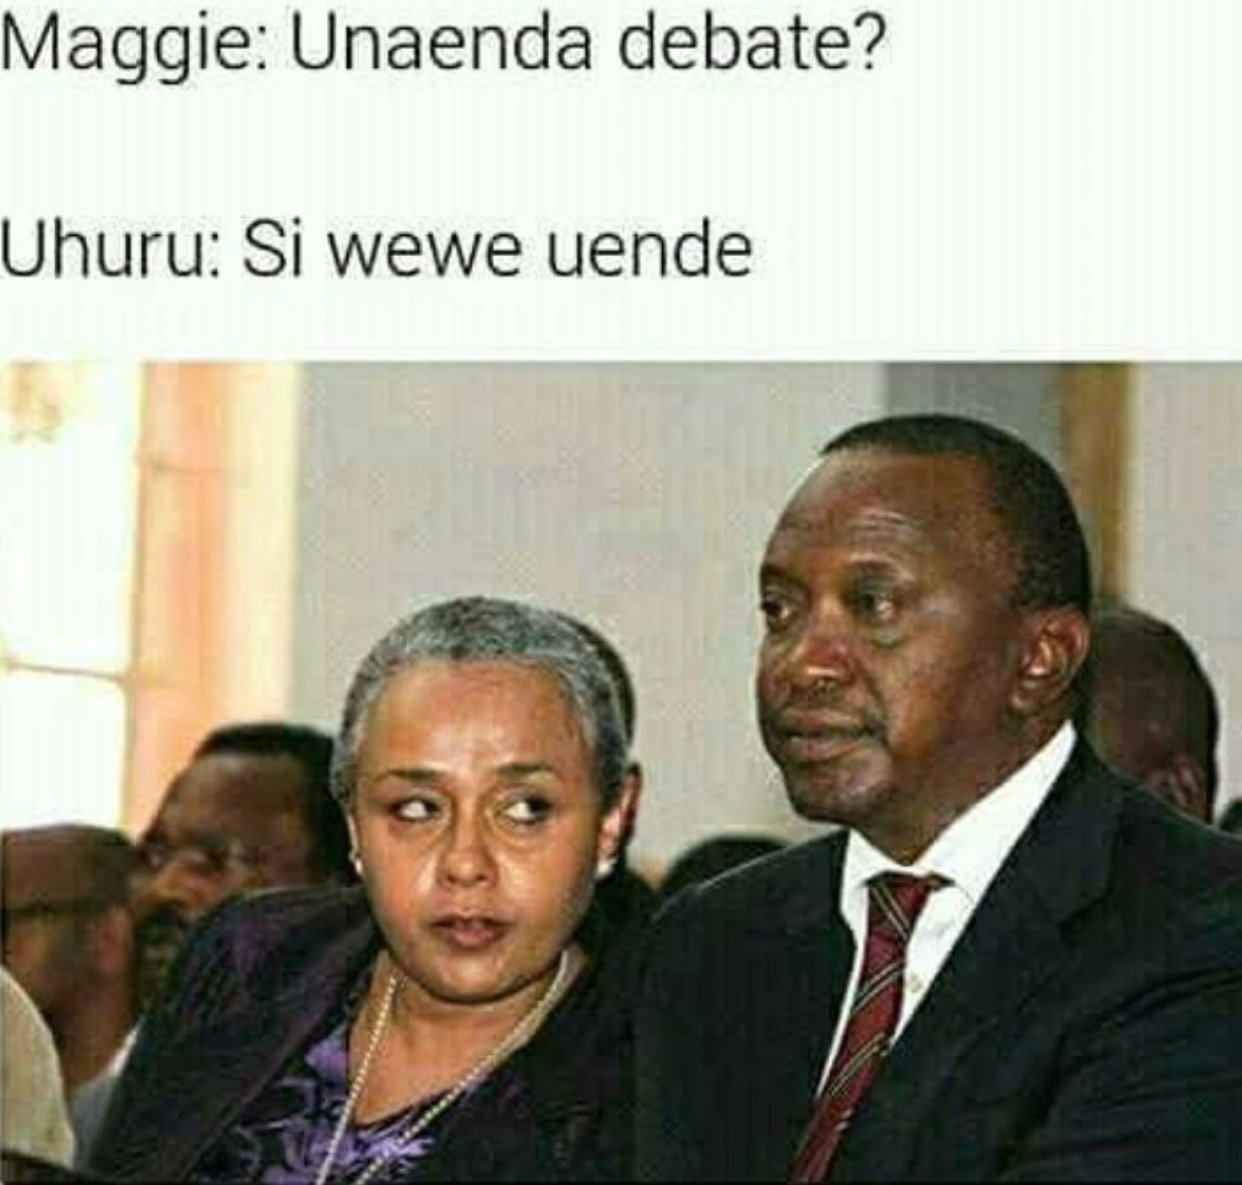 Anyway the presidential debate went just fine despite uhuru kenyatta not being present